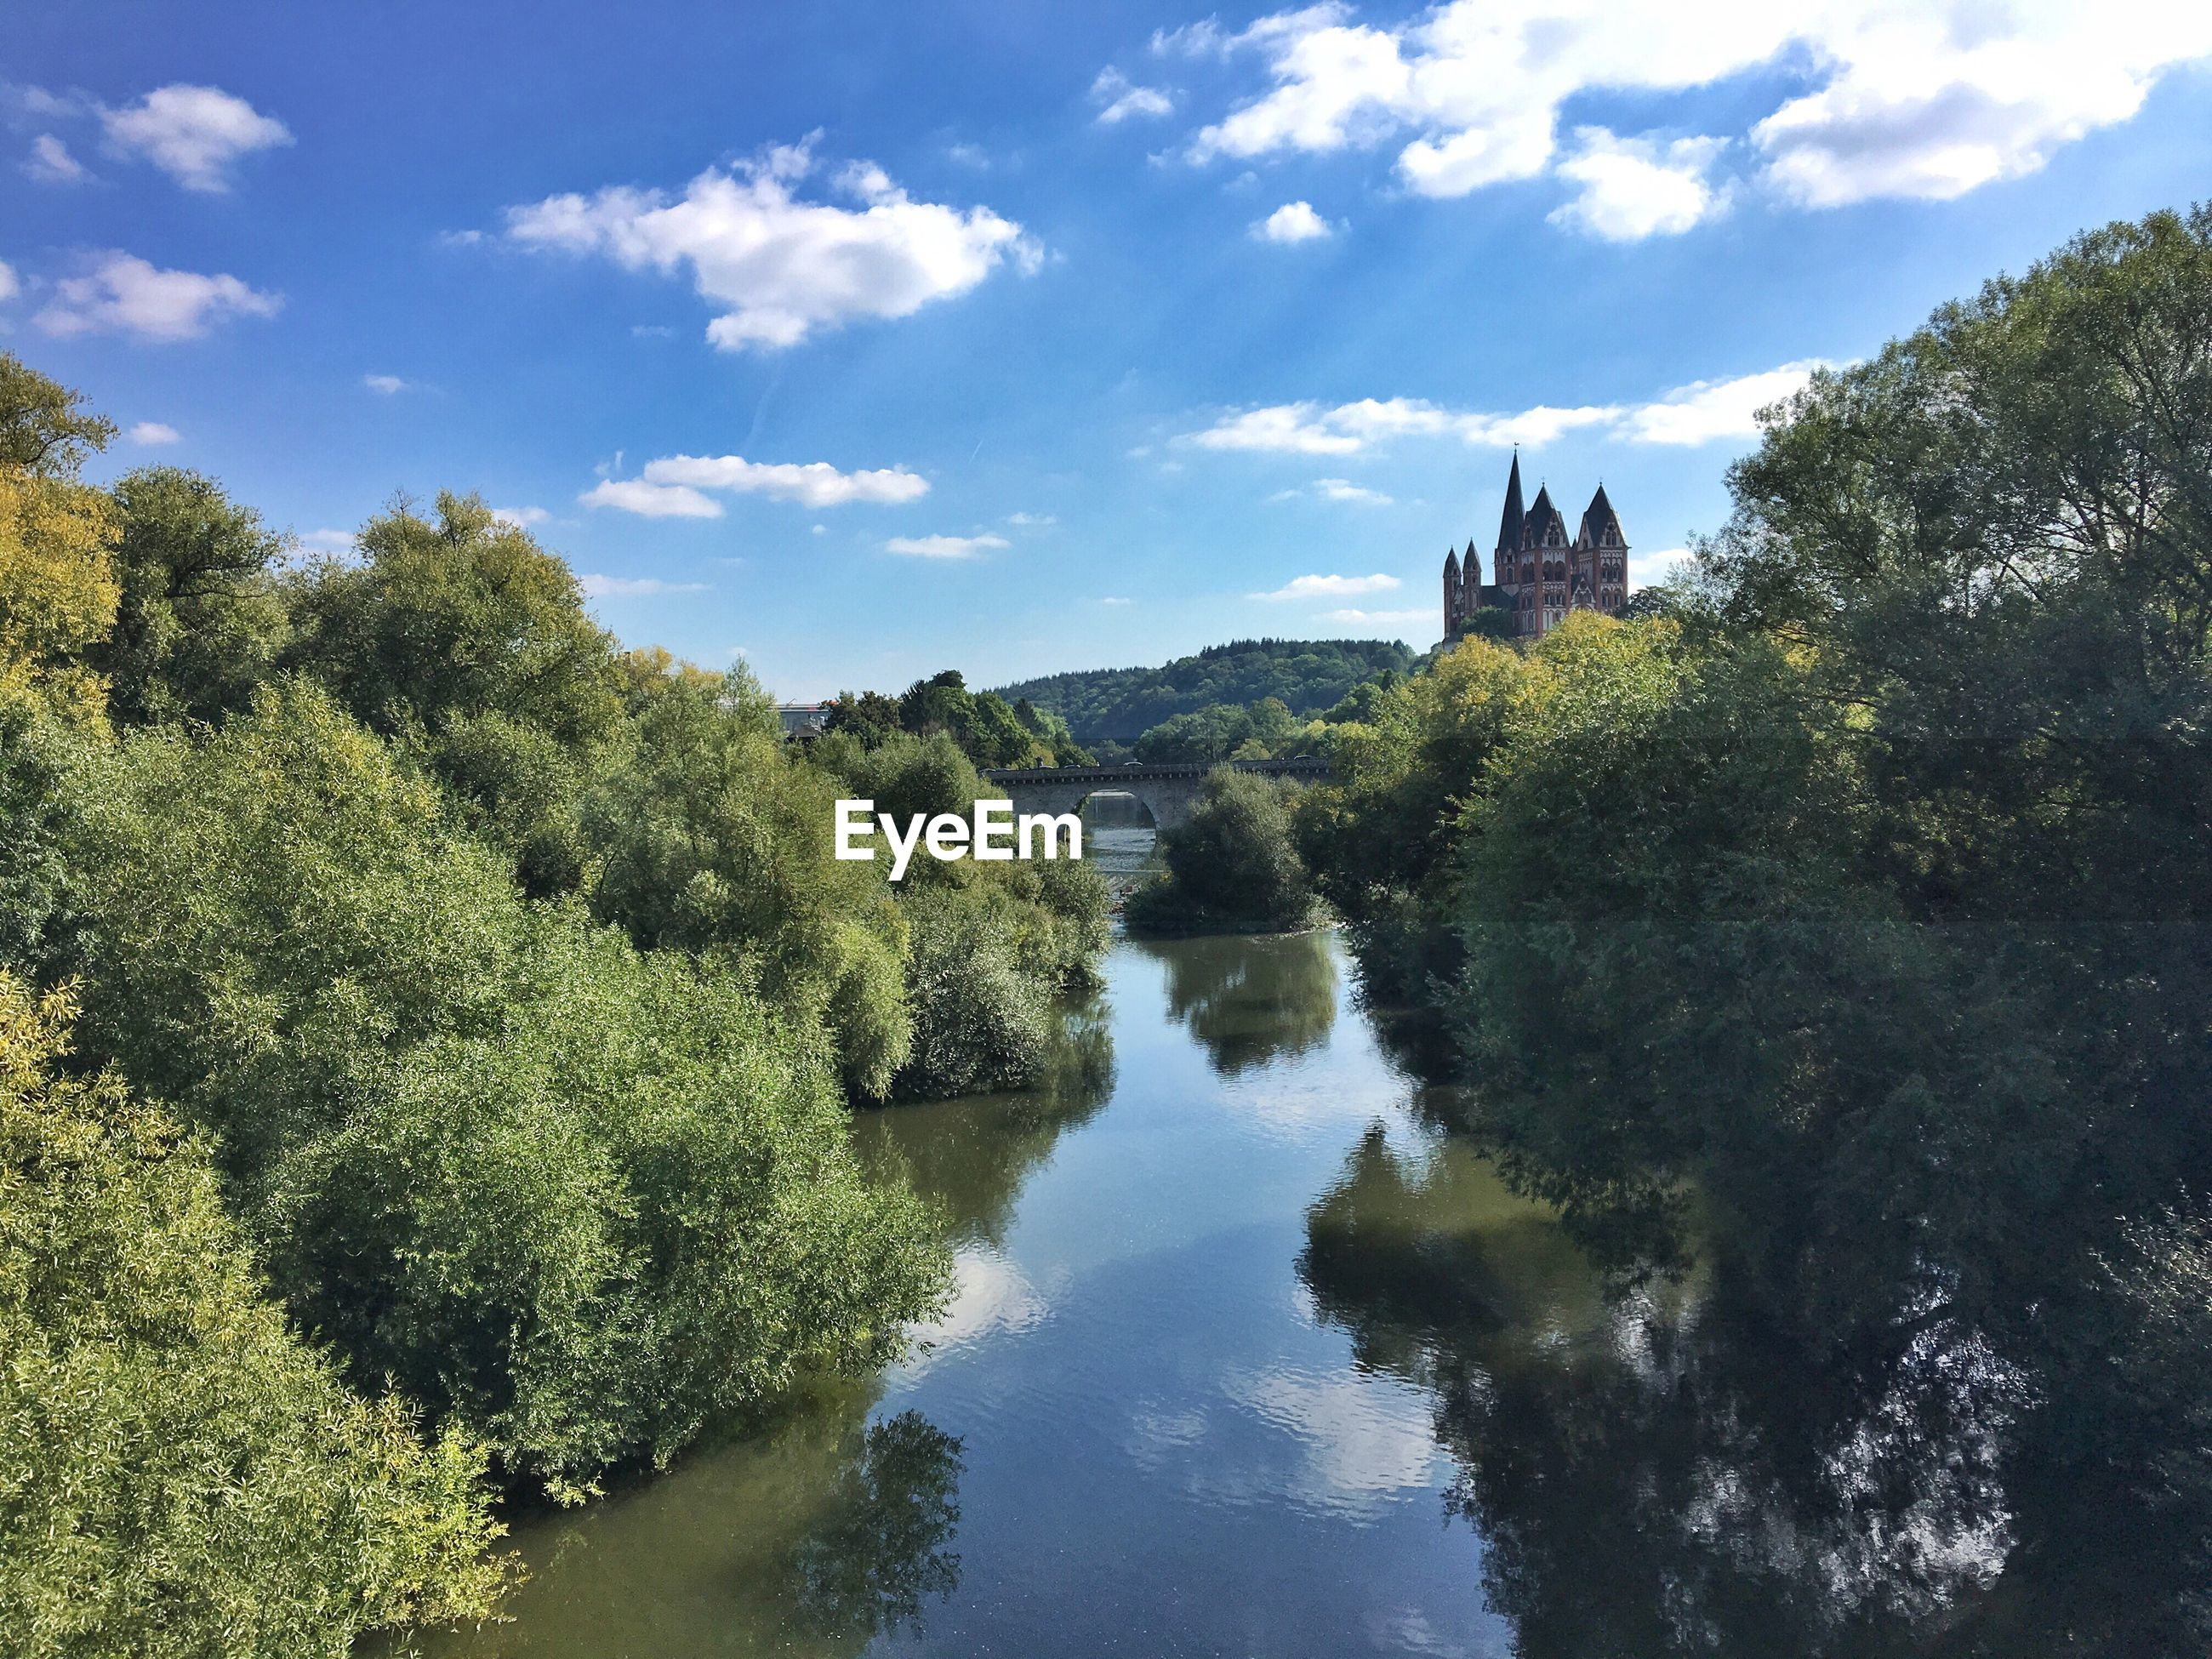 Limburg cathedral by lahn river against sky